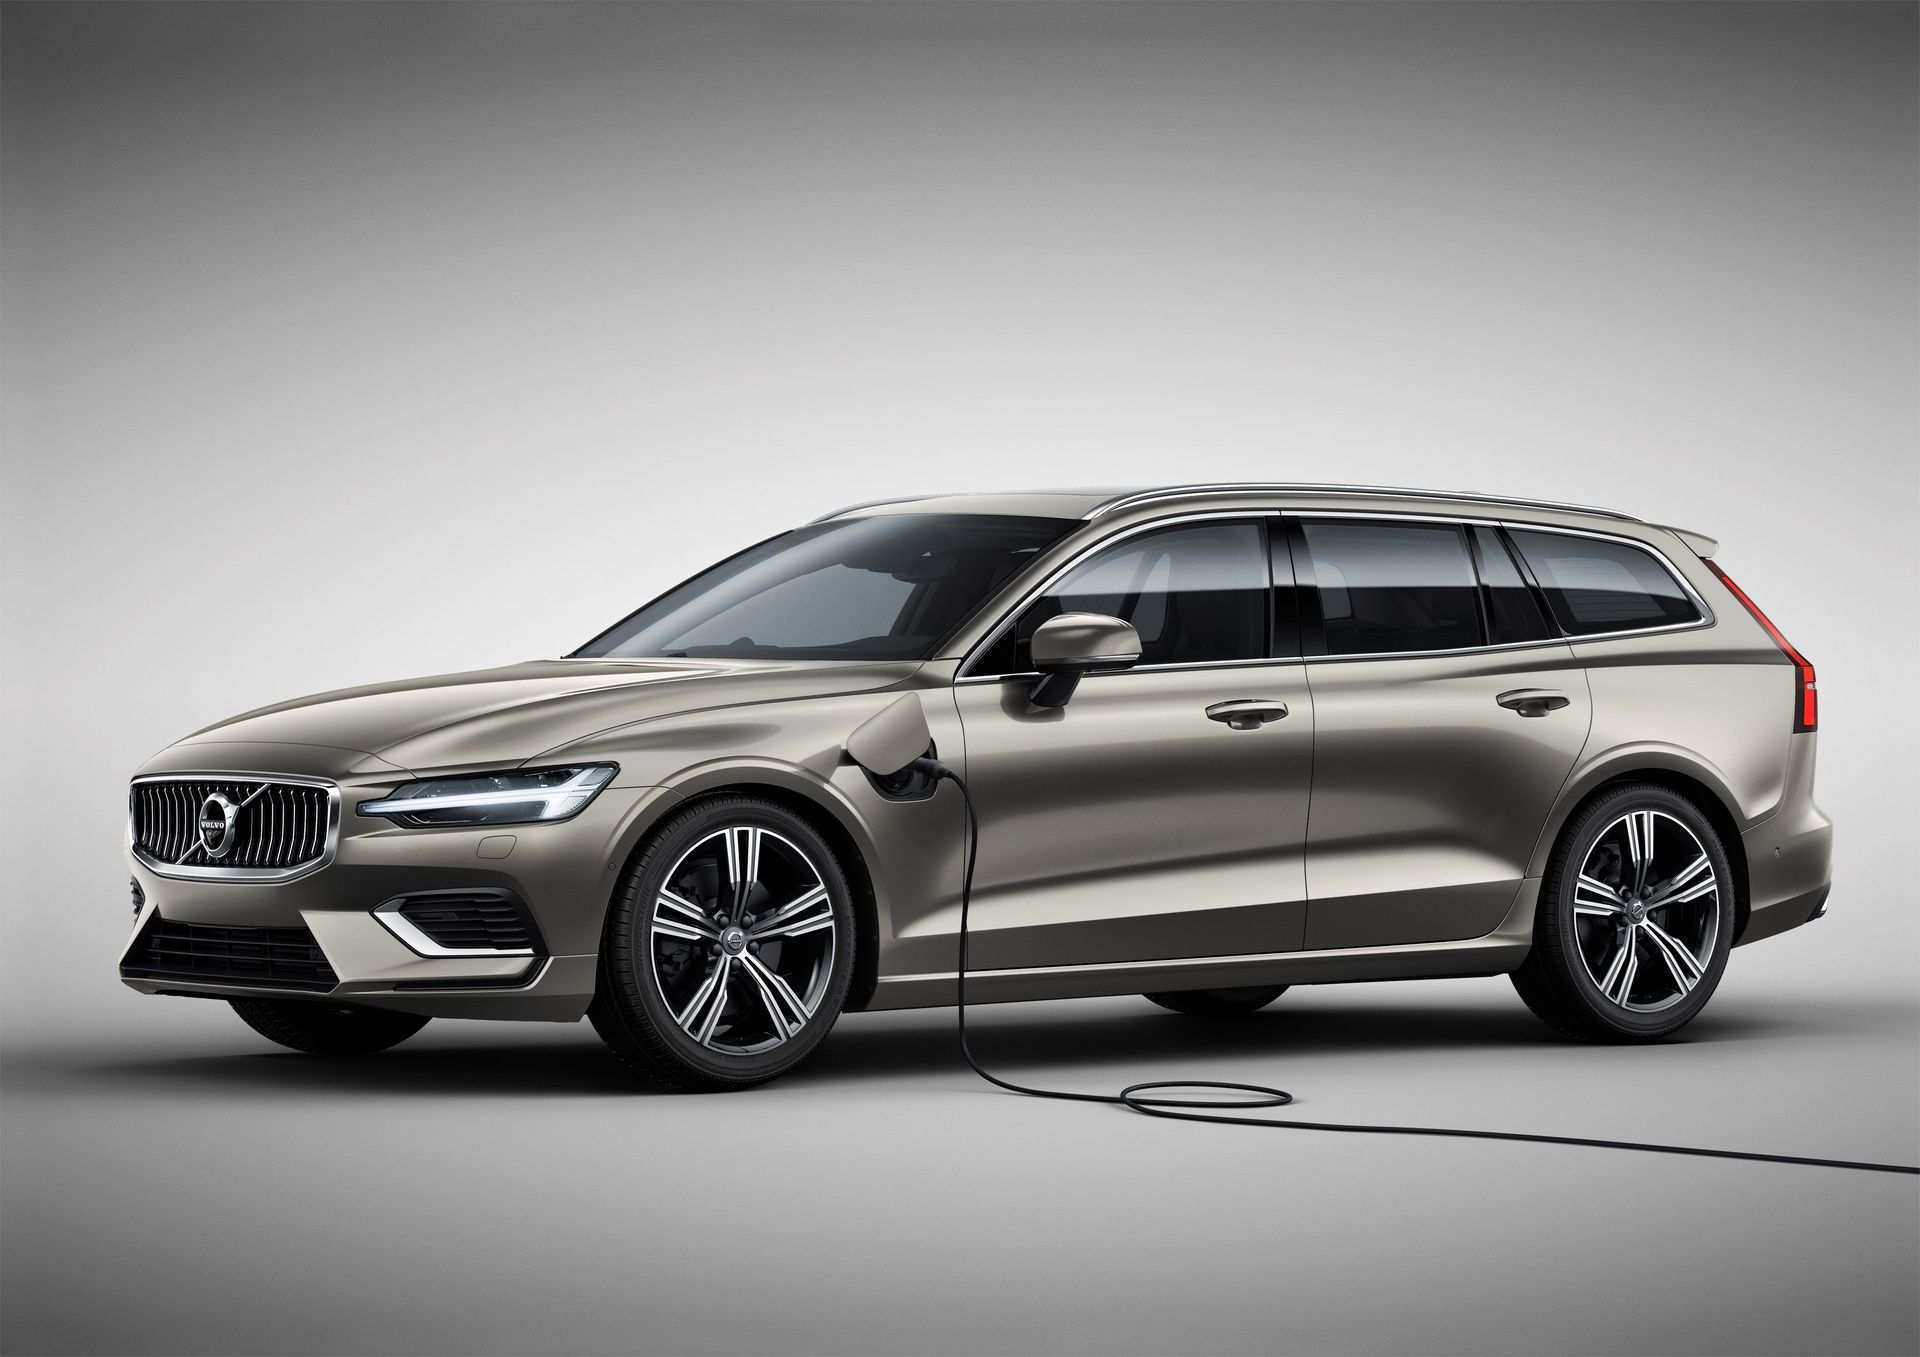 98 Concept of Volvo Phev 2020 New Review for Volvo Phev 2020